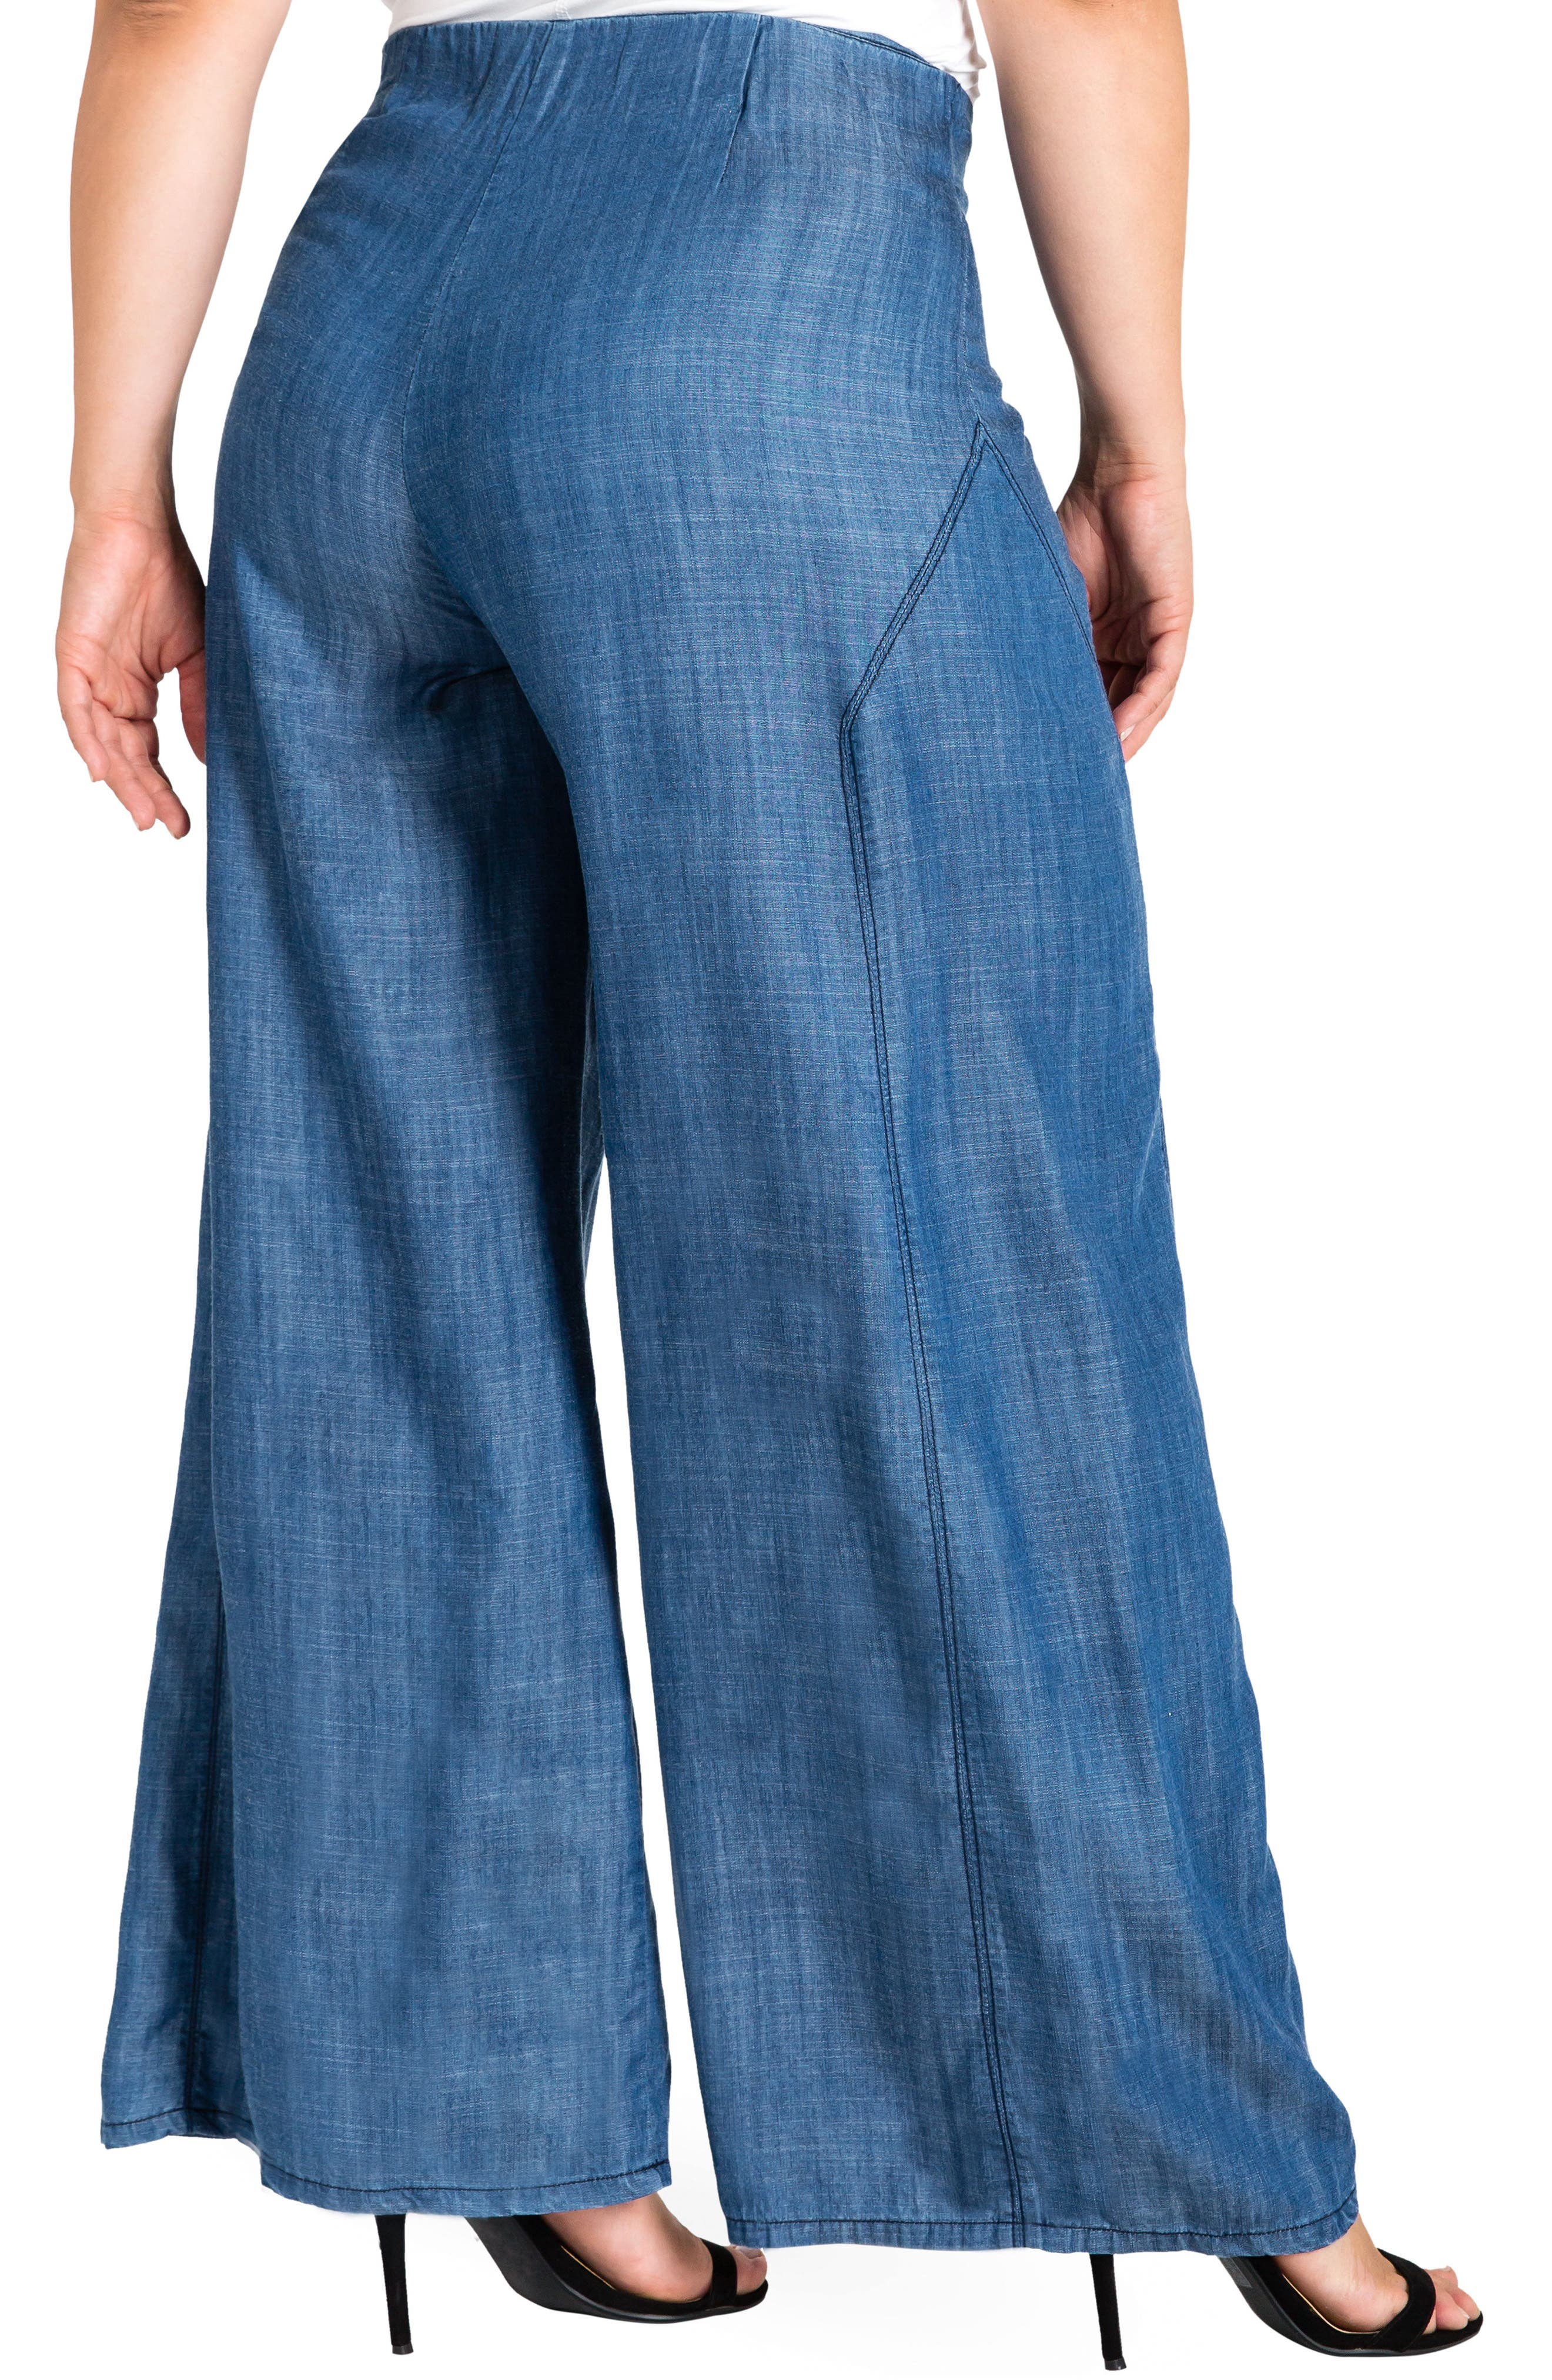 STANDARDS & PRACTICES,                             Perry Tencel<sup>®</sup> Denim Palazzo Pants,                             Alternate thumbnail 2, color,                             ALMOST RINSED